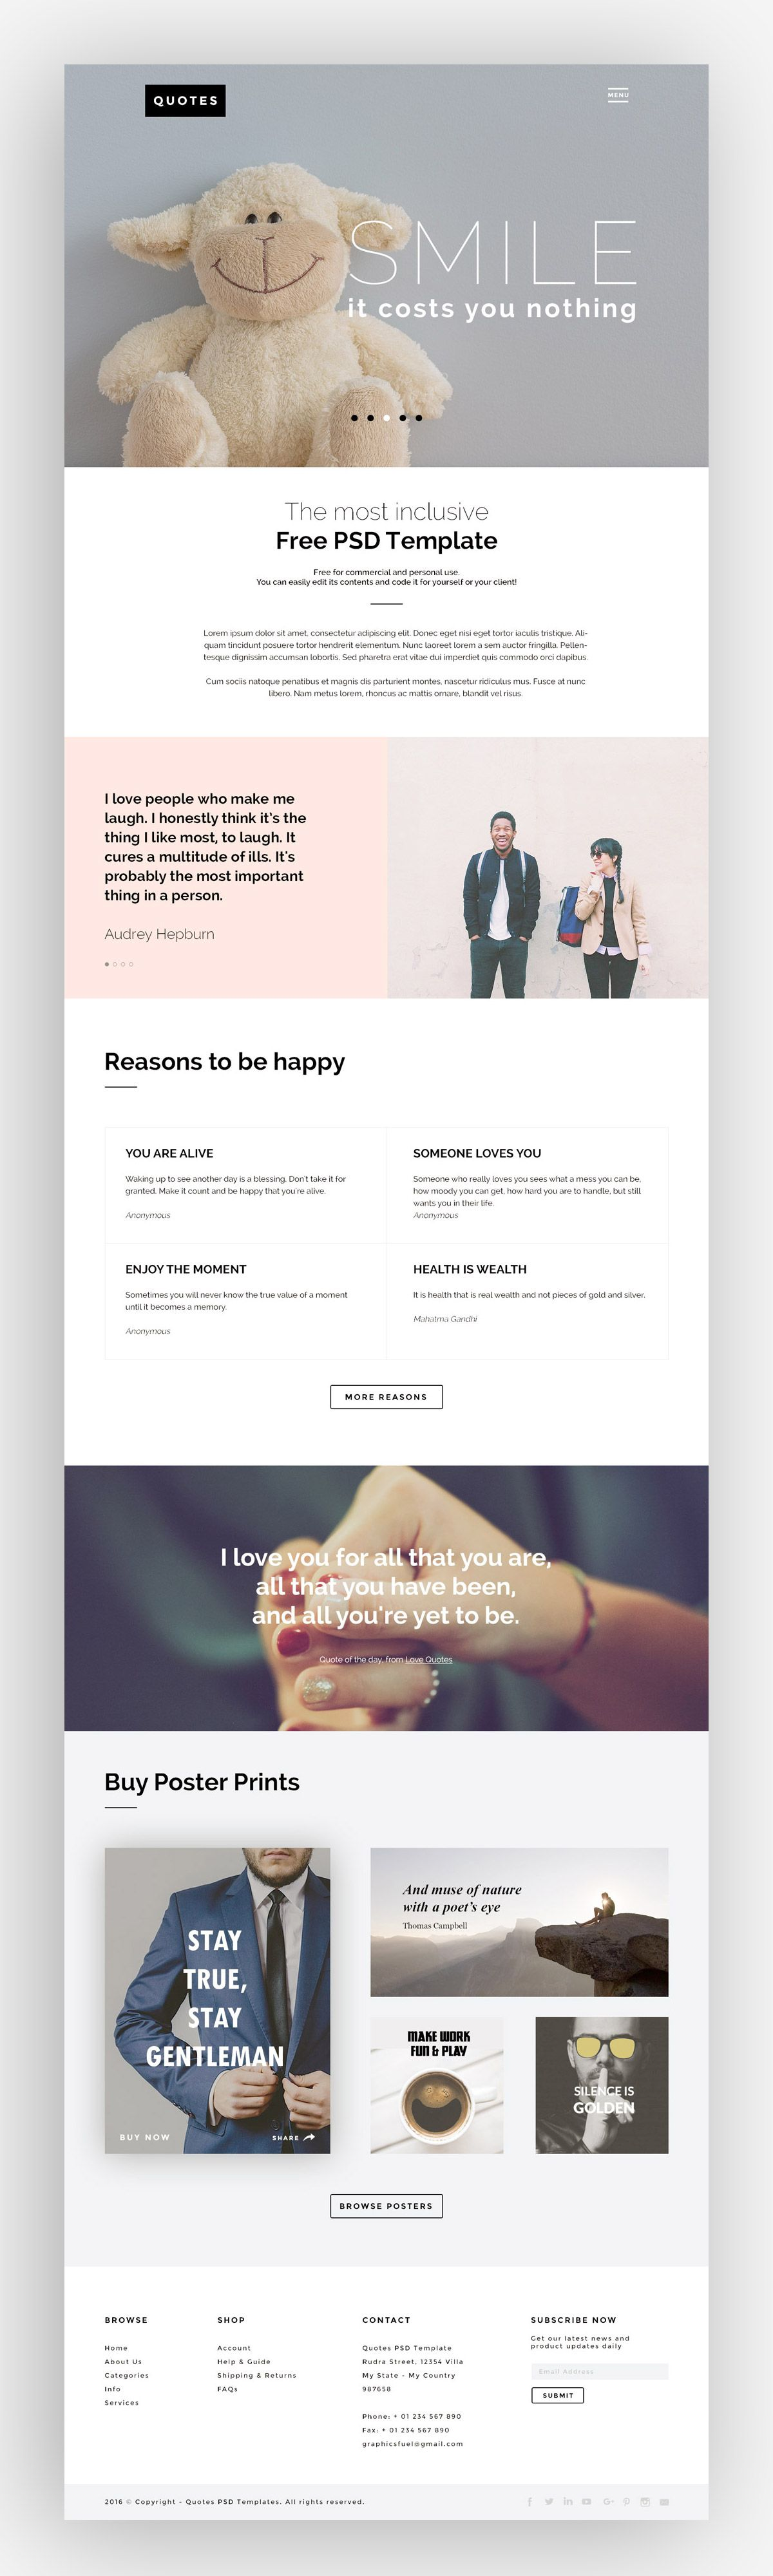 QUOTES: Free PSD Website Template   Free Web Resources   Pinterest